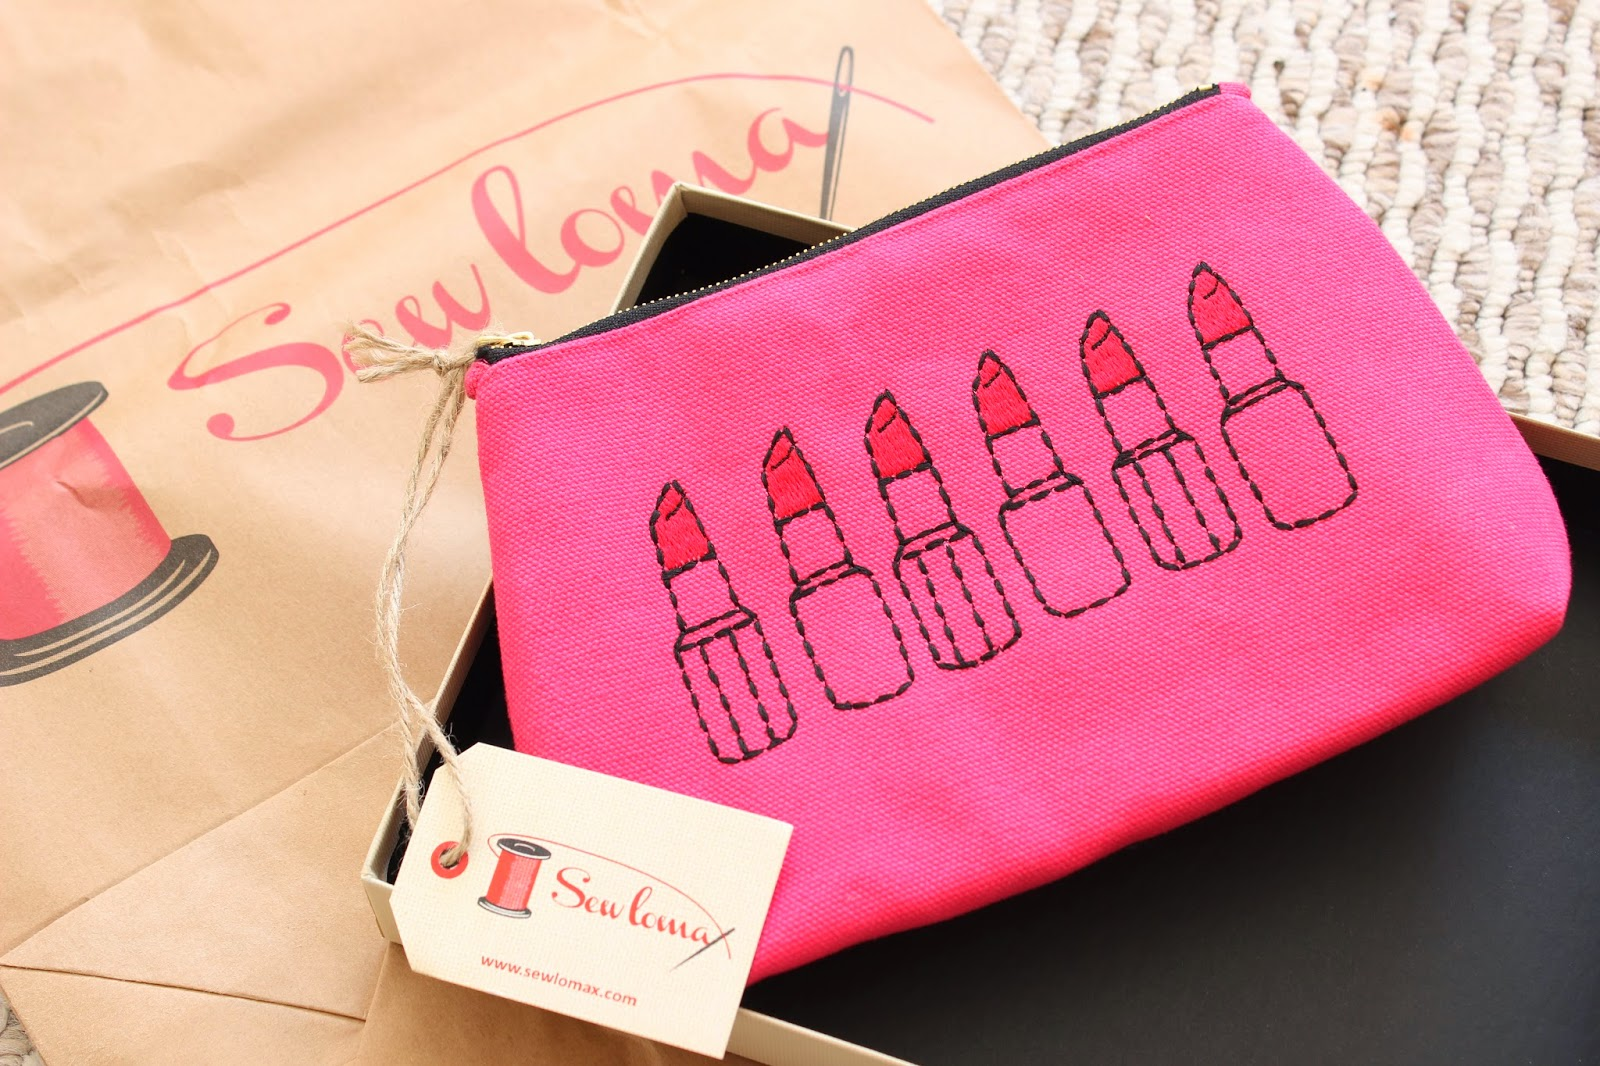 The Sewlomax Makeup Bag